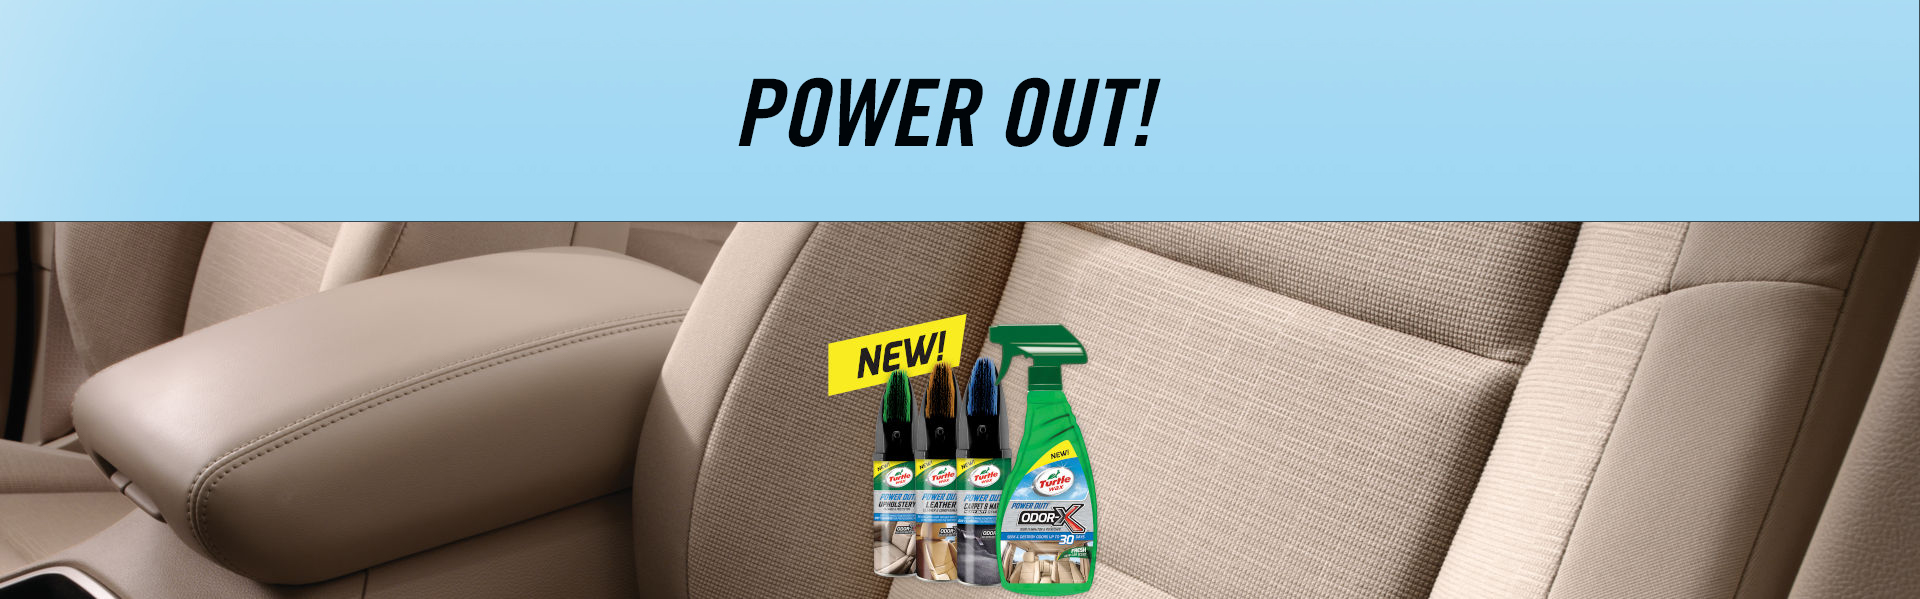 Turtle Wax power-out banner